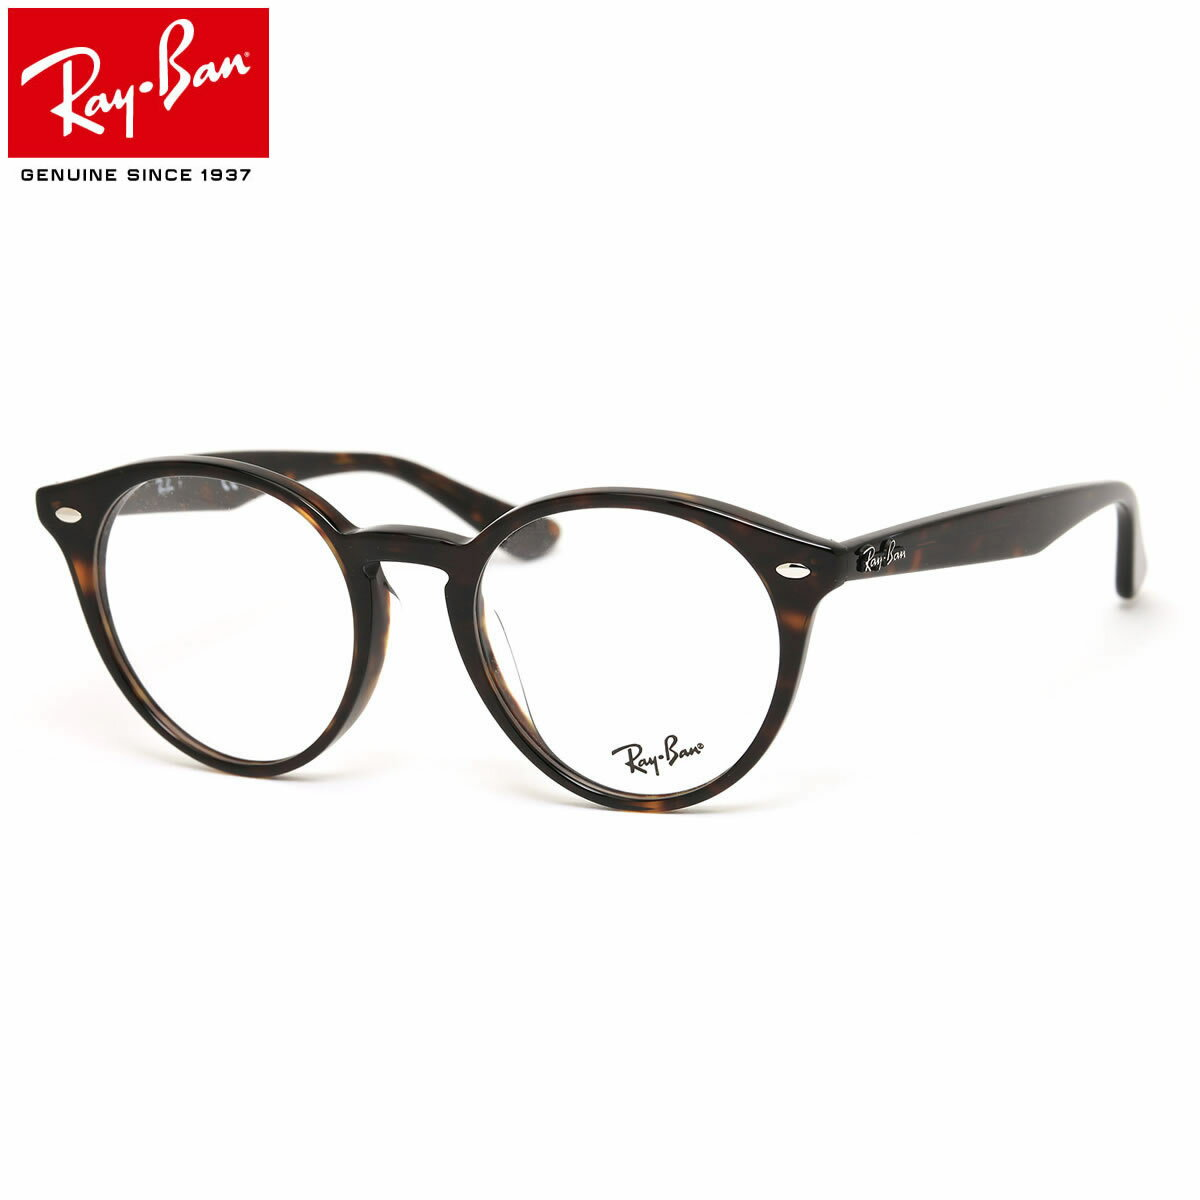 (Ray-Ban) glasses frames RX2180VF2012 51 size full fit round round glasses ROUND Ray-Ban RAYBAN men\u0026#39;s women\u0026#39;s